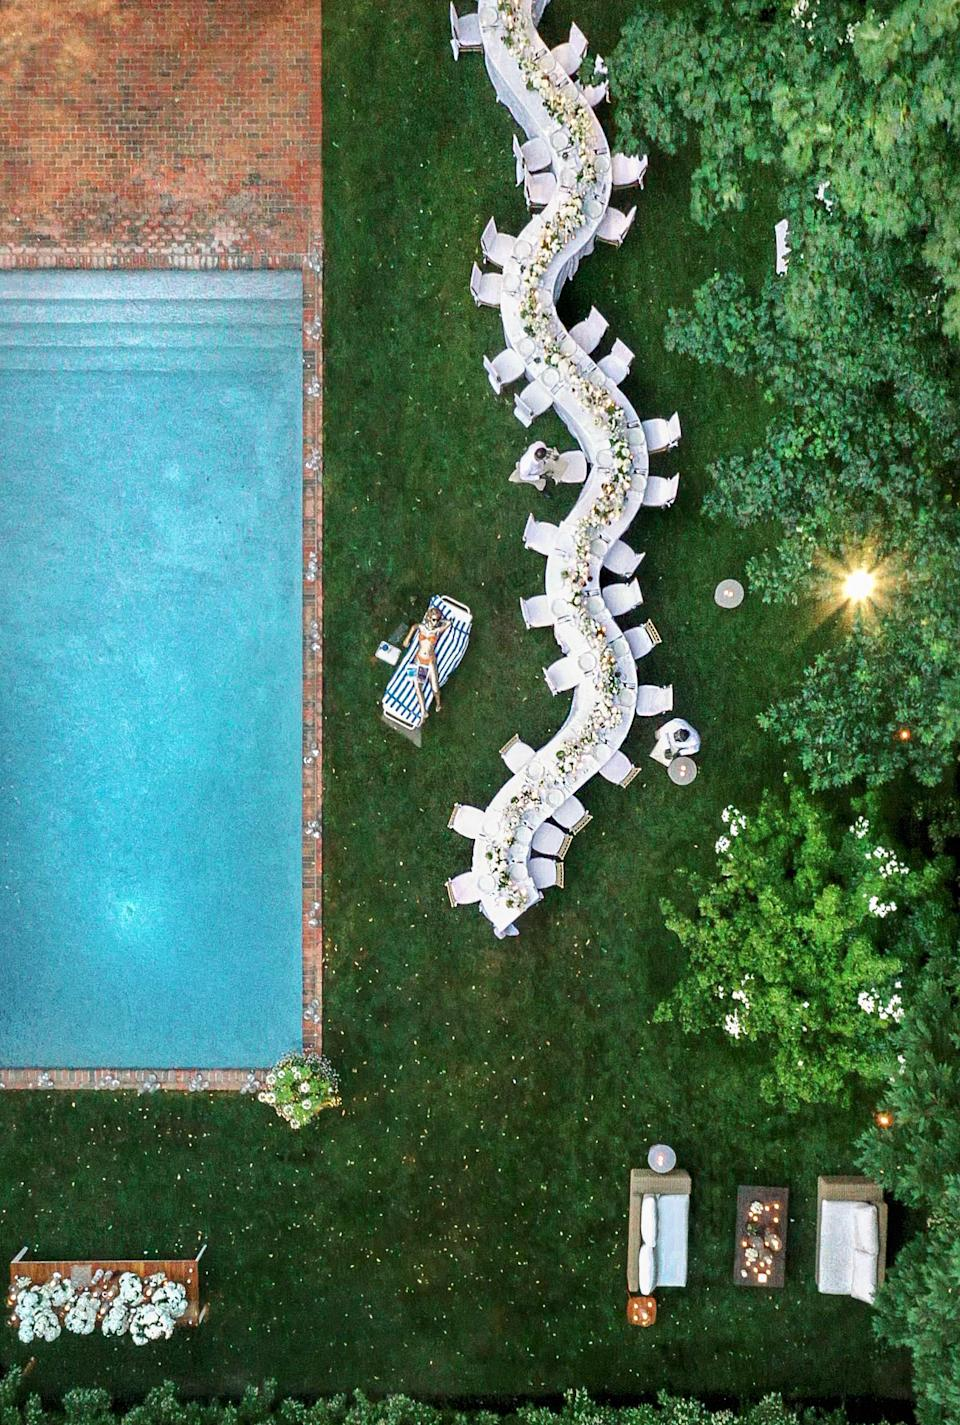 An amazing aerial photo captured with a drone by our videographer, Reeling Films. You can really see how we seated guests by quarantine pod from this angle!